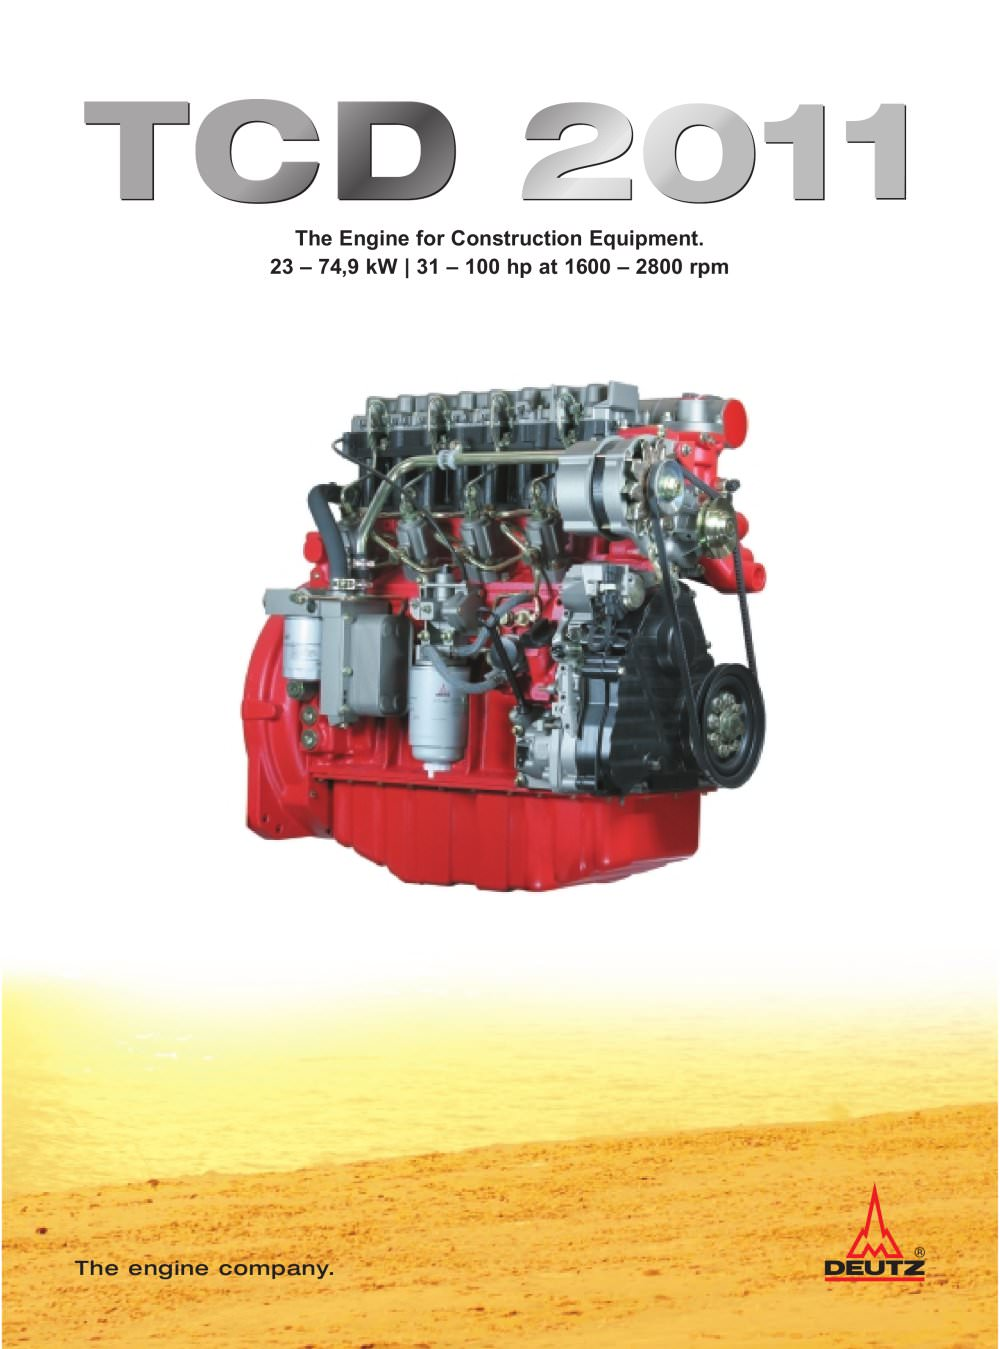 TCD 2011 The construction equipment engine - 1 / 6 Pages